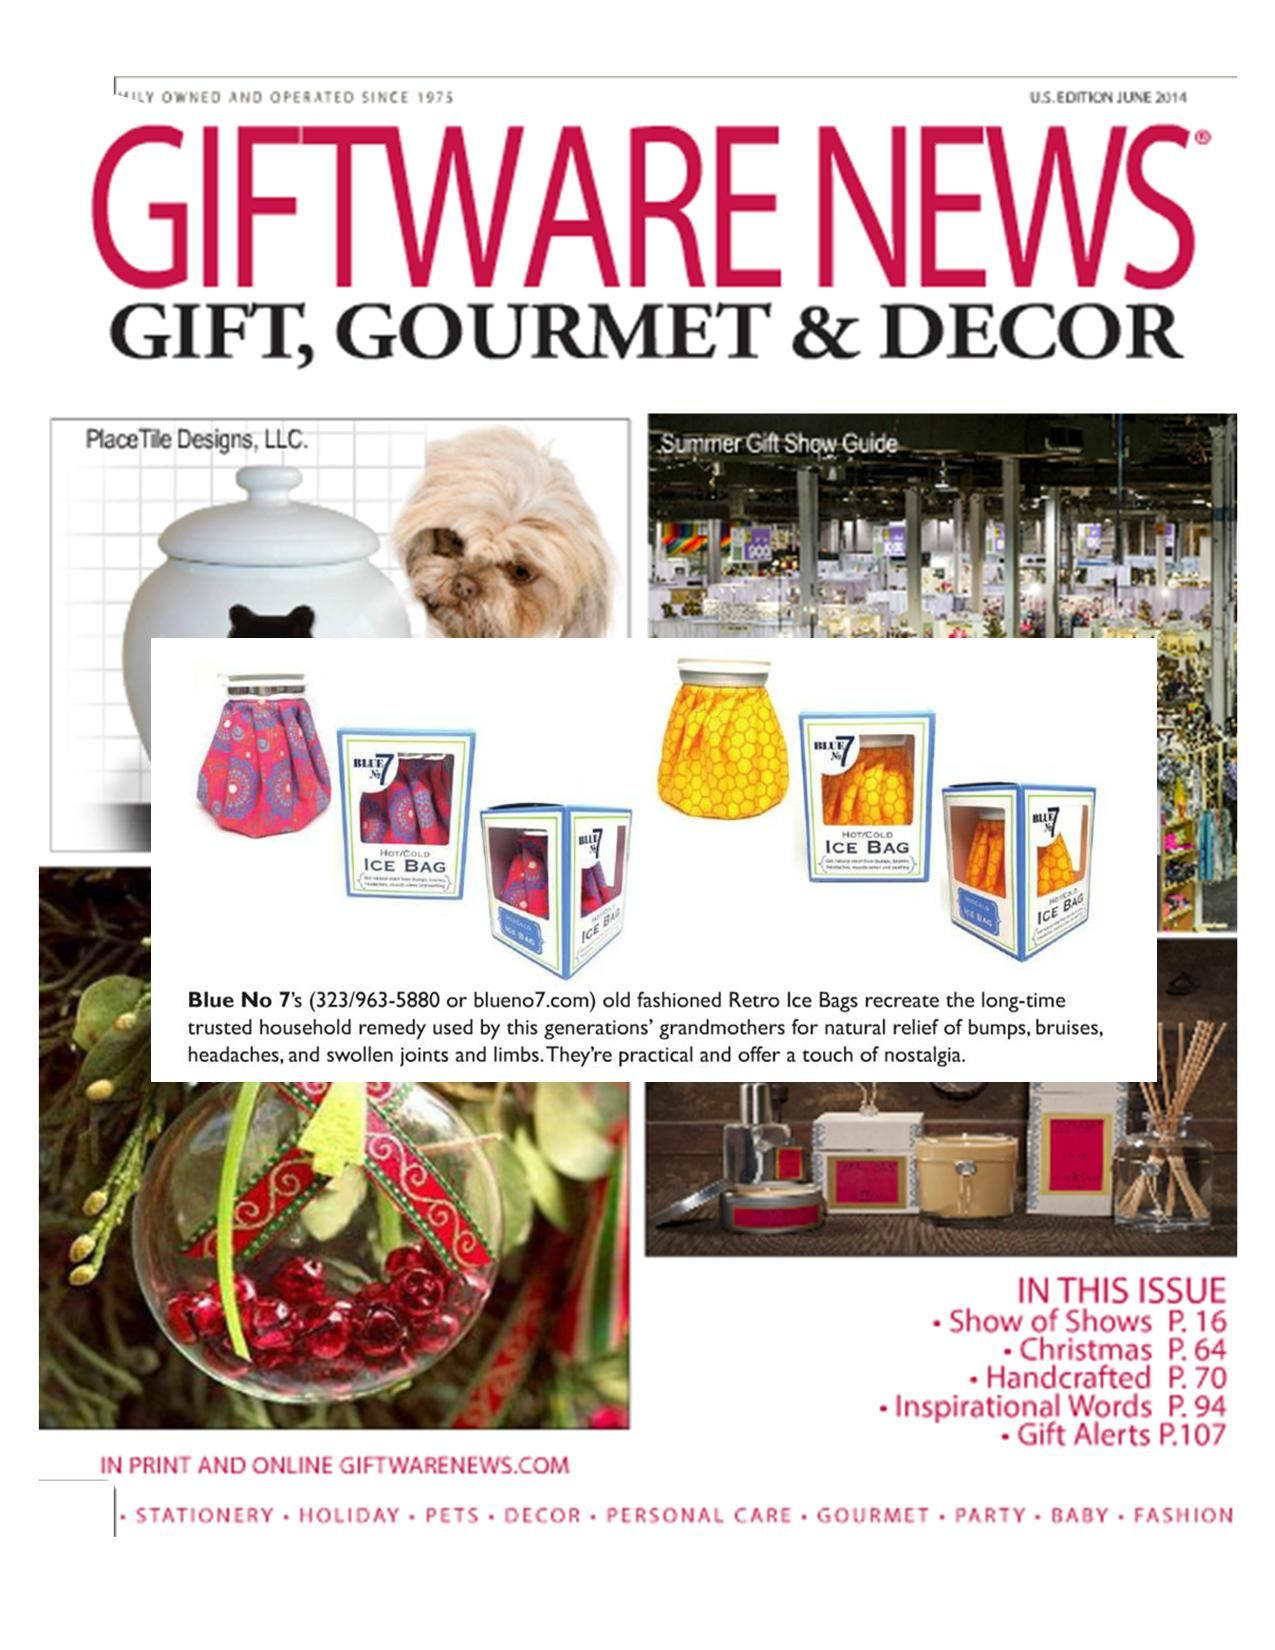 Giftware News Magazine Blue No 7 Vintage Ice Bags Ice Bag Household Remedies Giftware